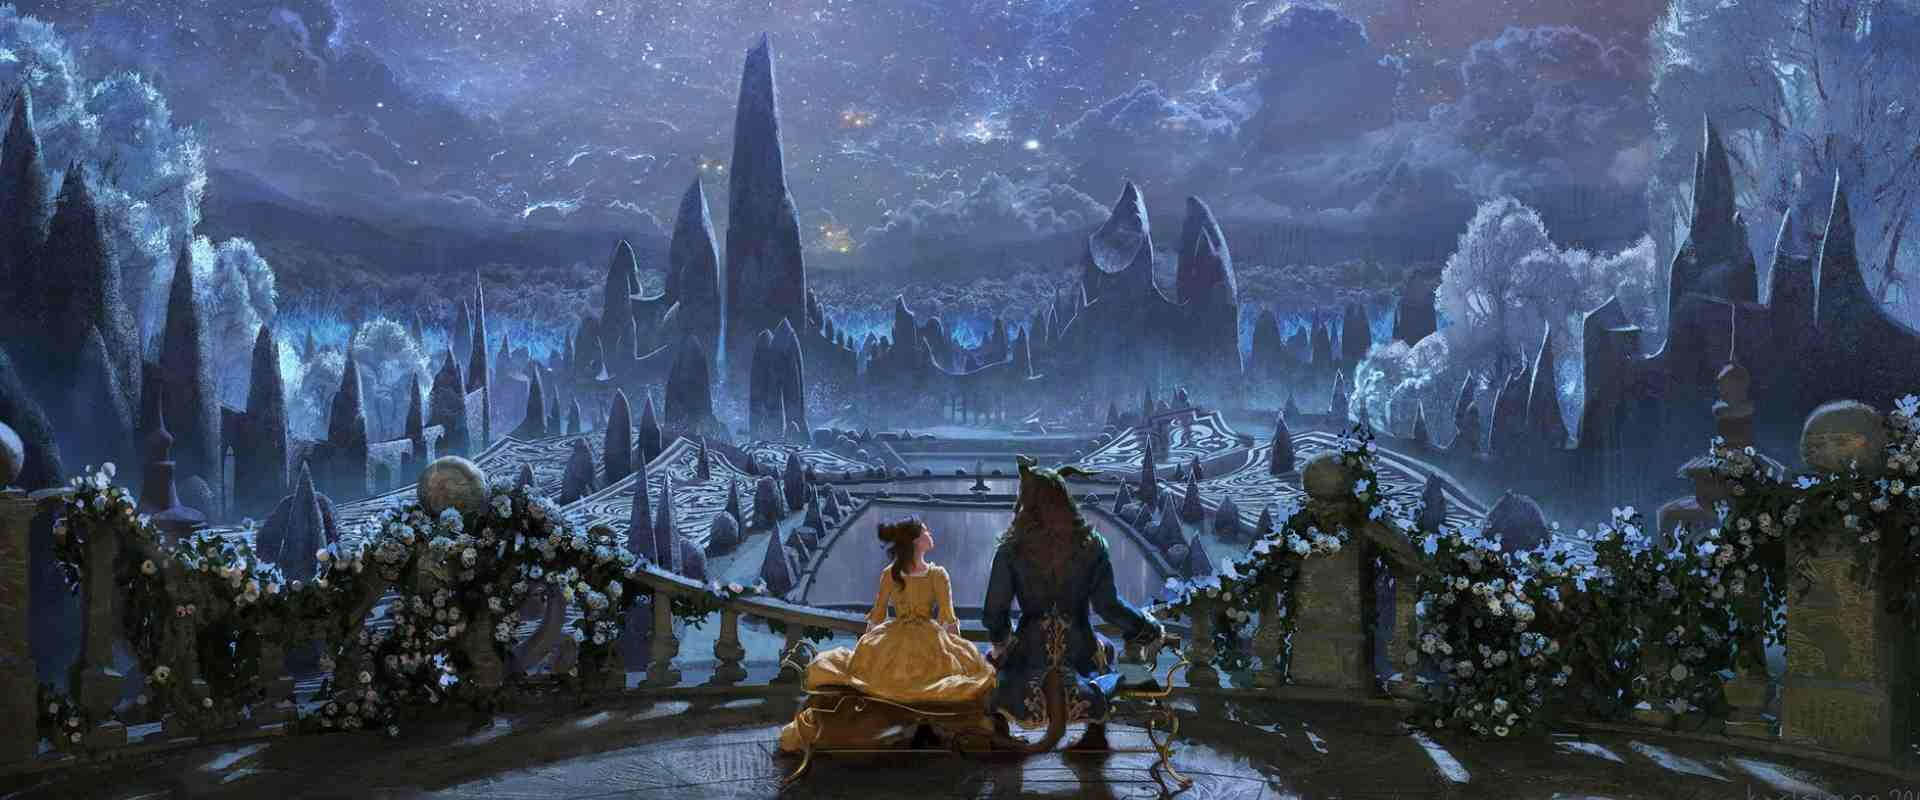 Concept Art for Beauty and the Beast in the article about Concept Artist